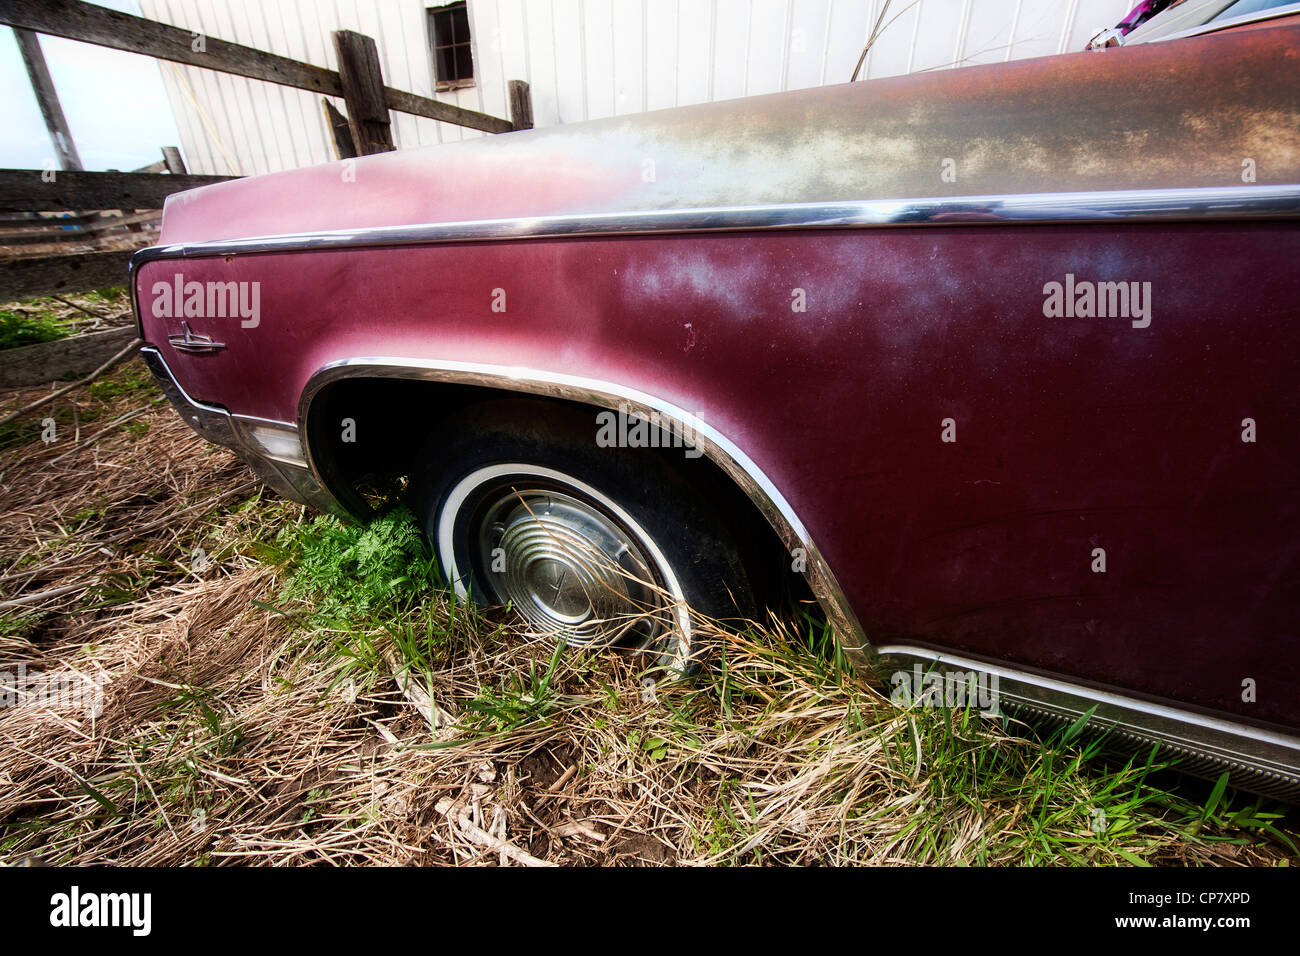 The fender and wheel of an old classic car. - Stock Image